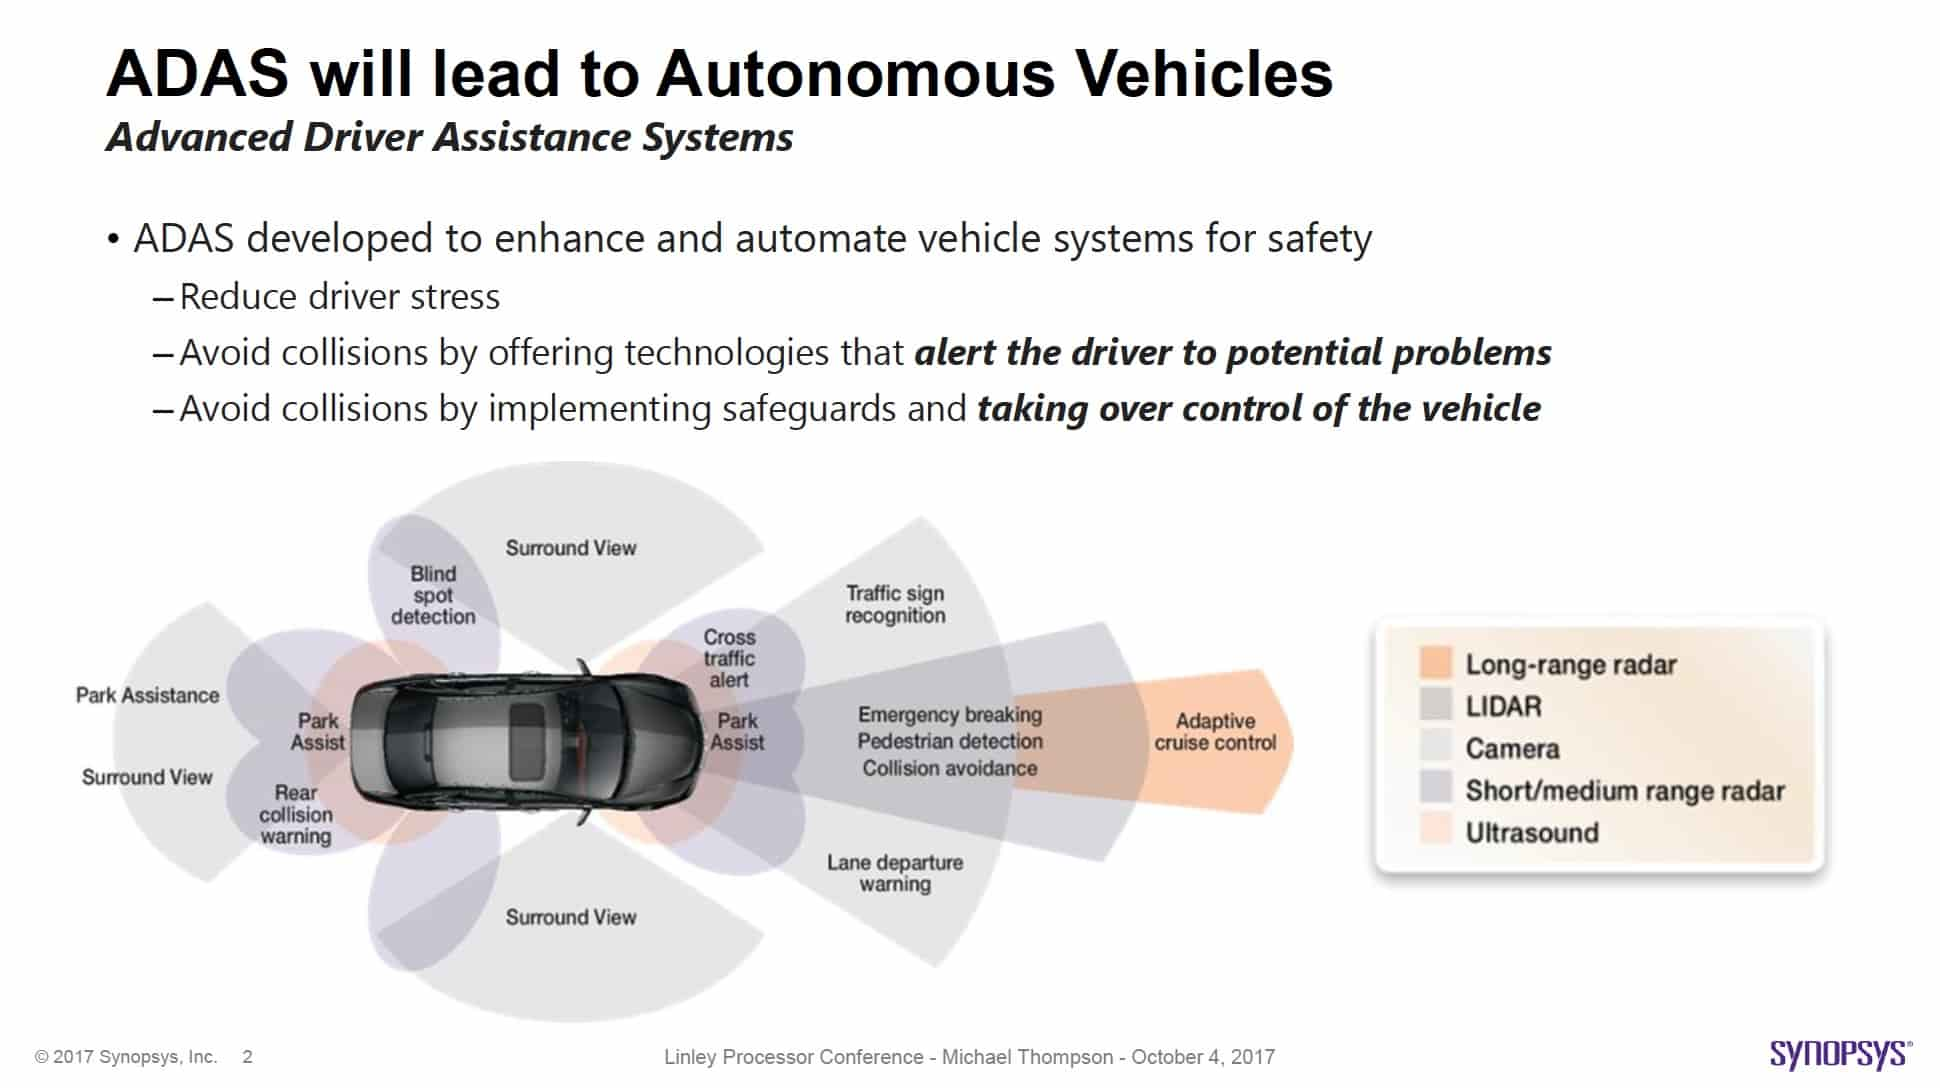 20684-synopsys-autonomous-vehicle-min.jpg